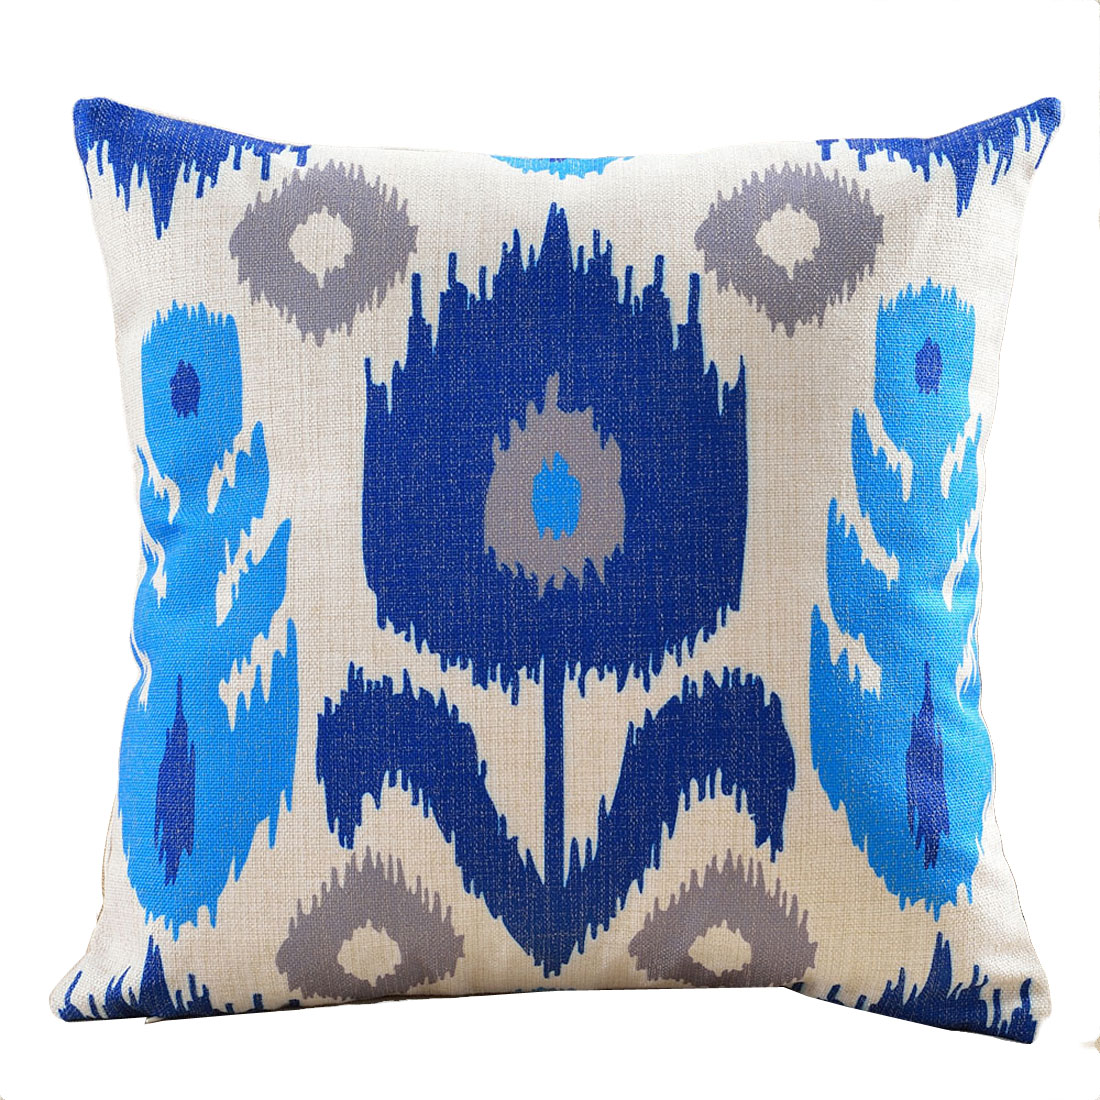 Home Cotton Linen Square Design Northern Europe Abstract Style Pillow Cover